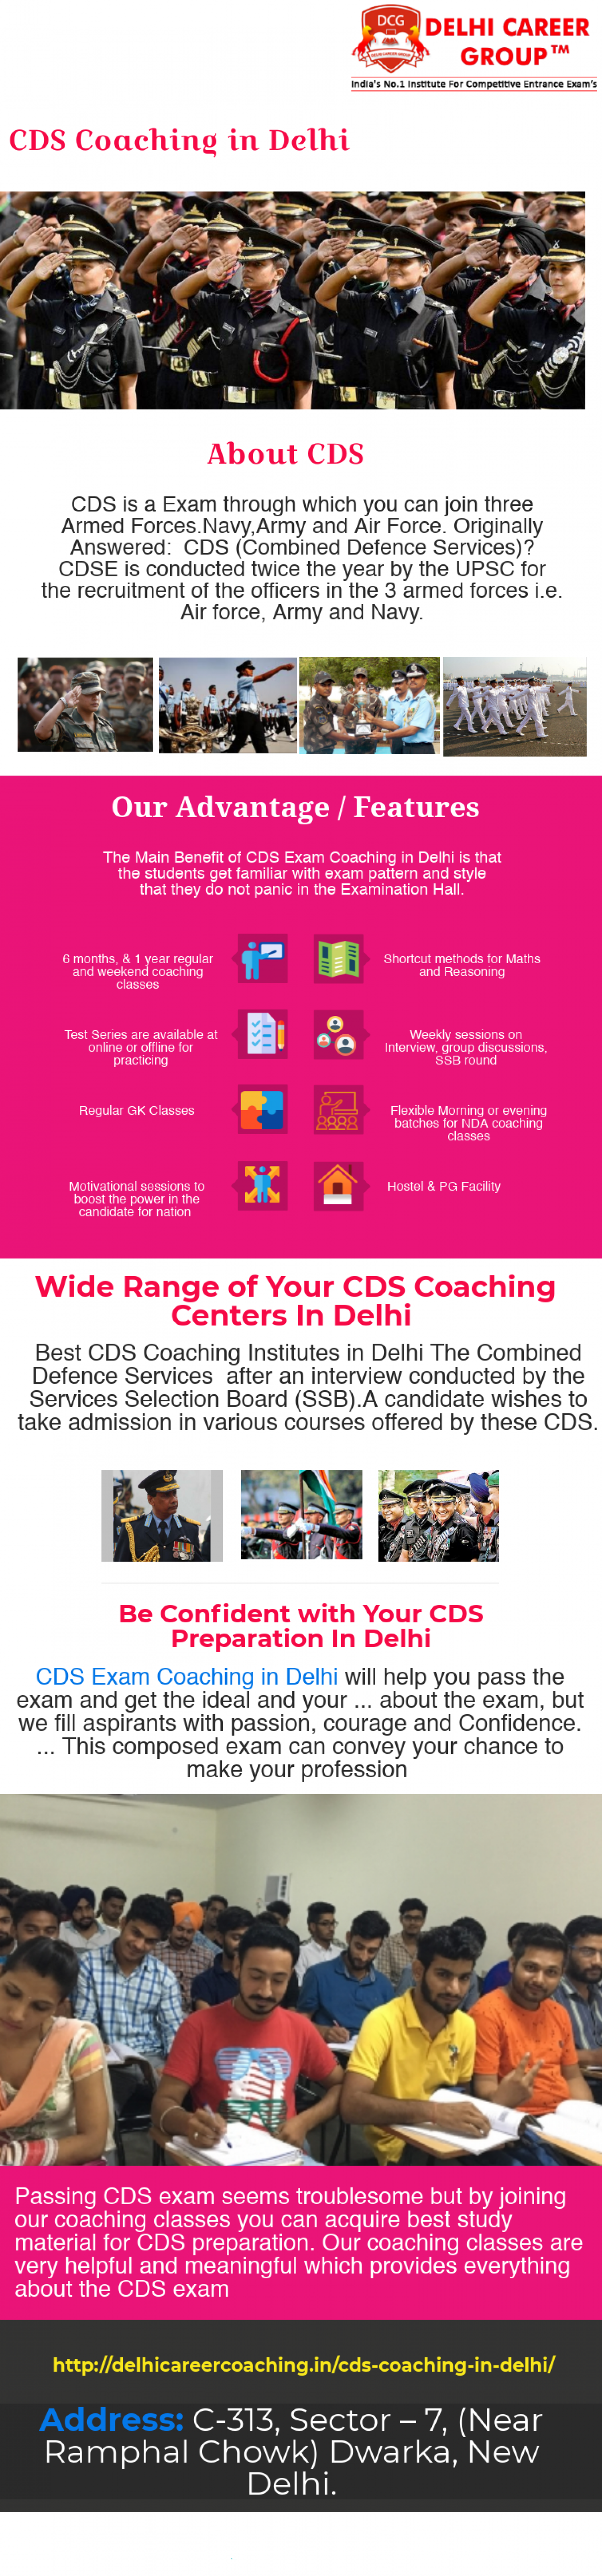 CDS Coaching in Delhi Infographic